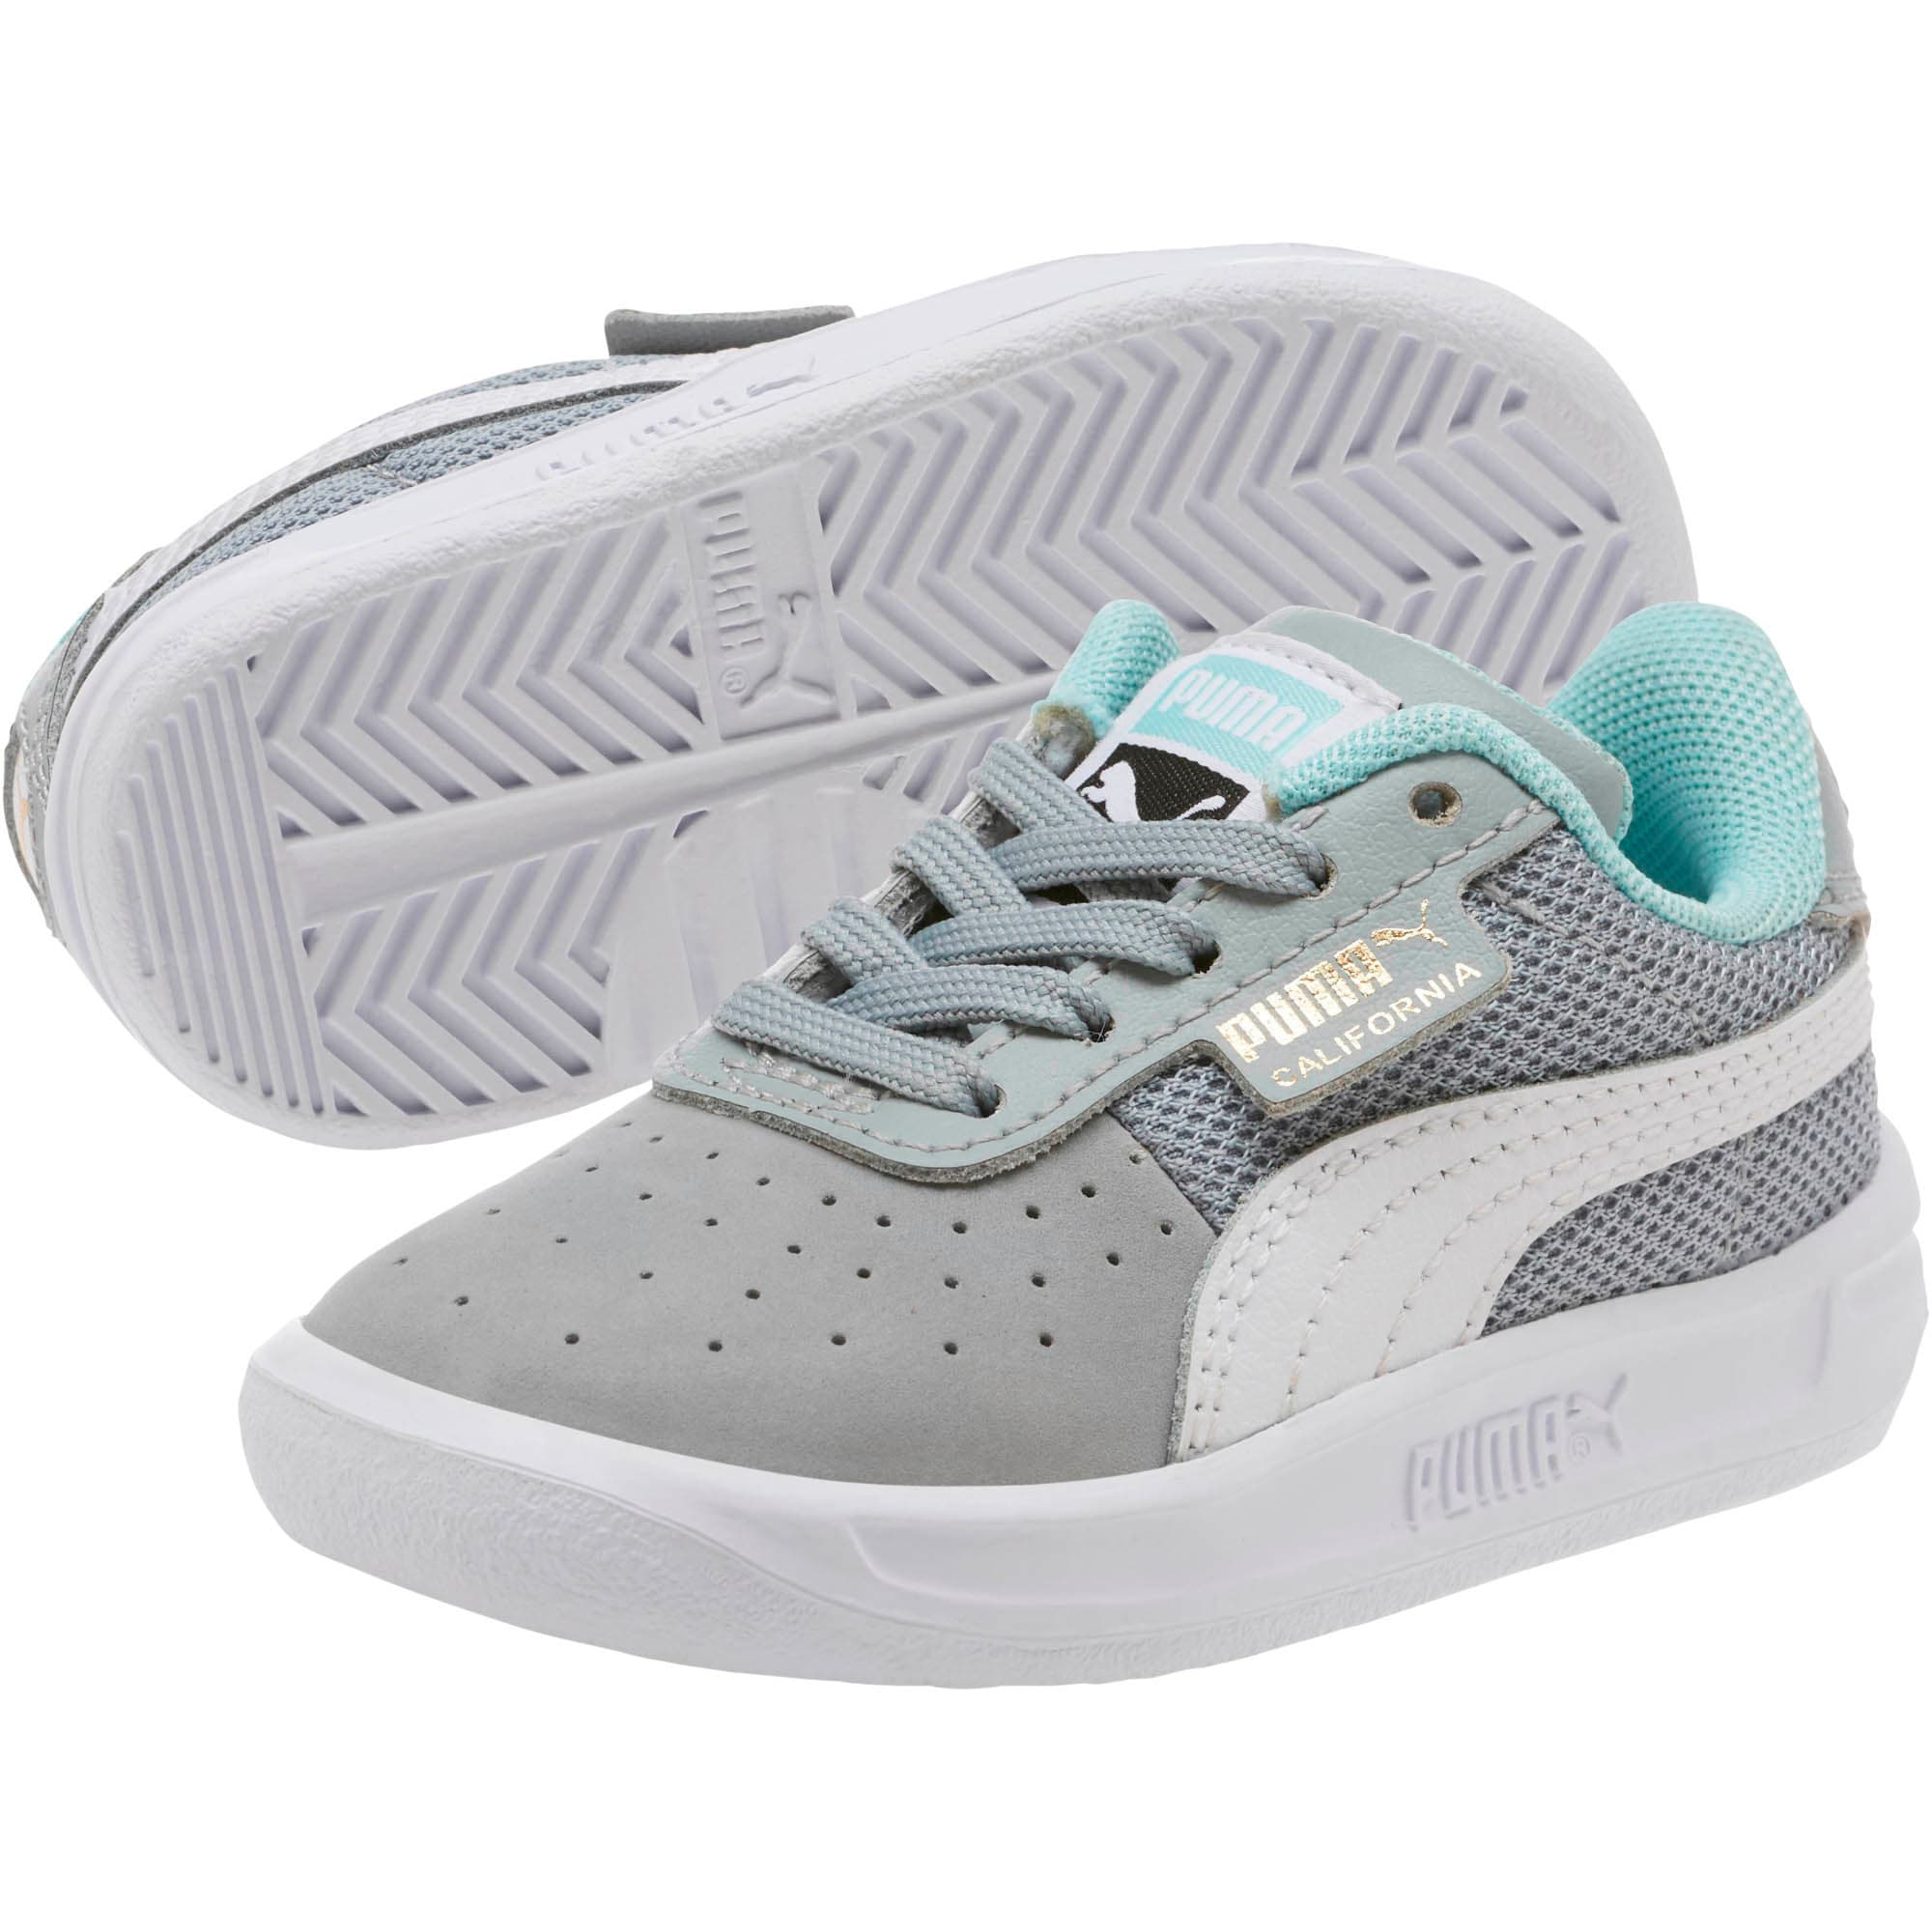 Thumbnail 2 of California Casual Toddler Shoes, Quarry-Puma White-Gold, medium